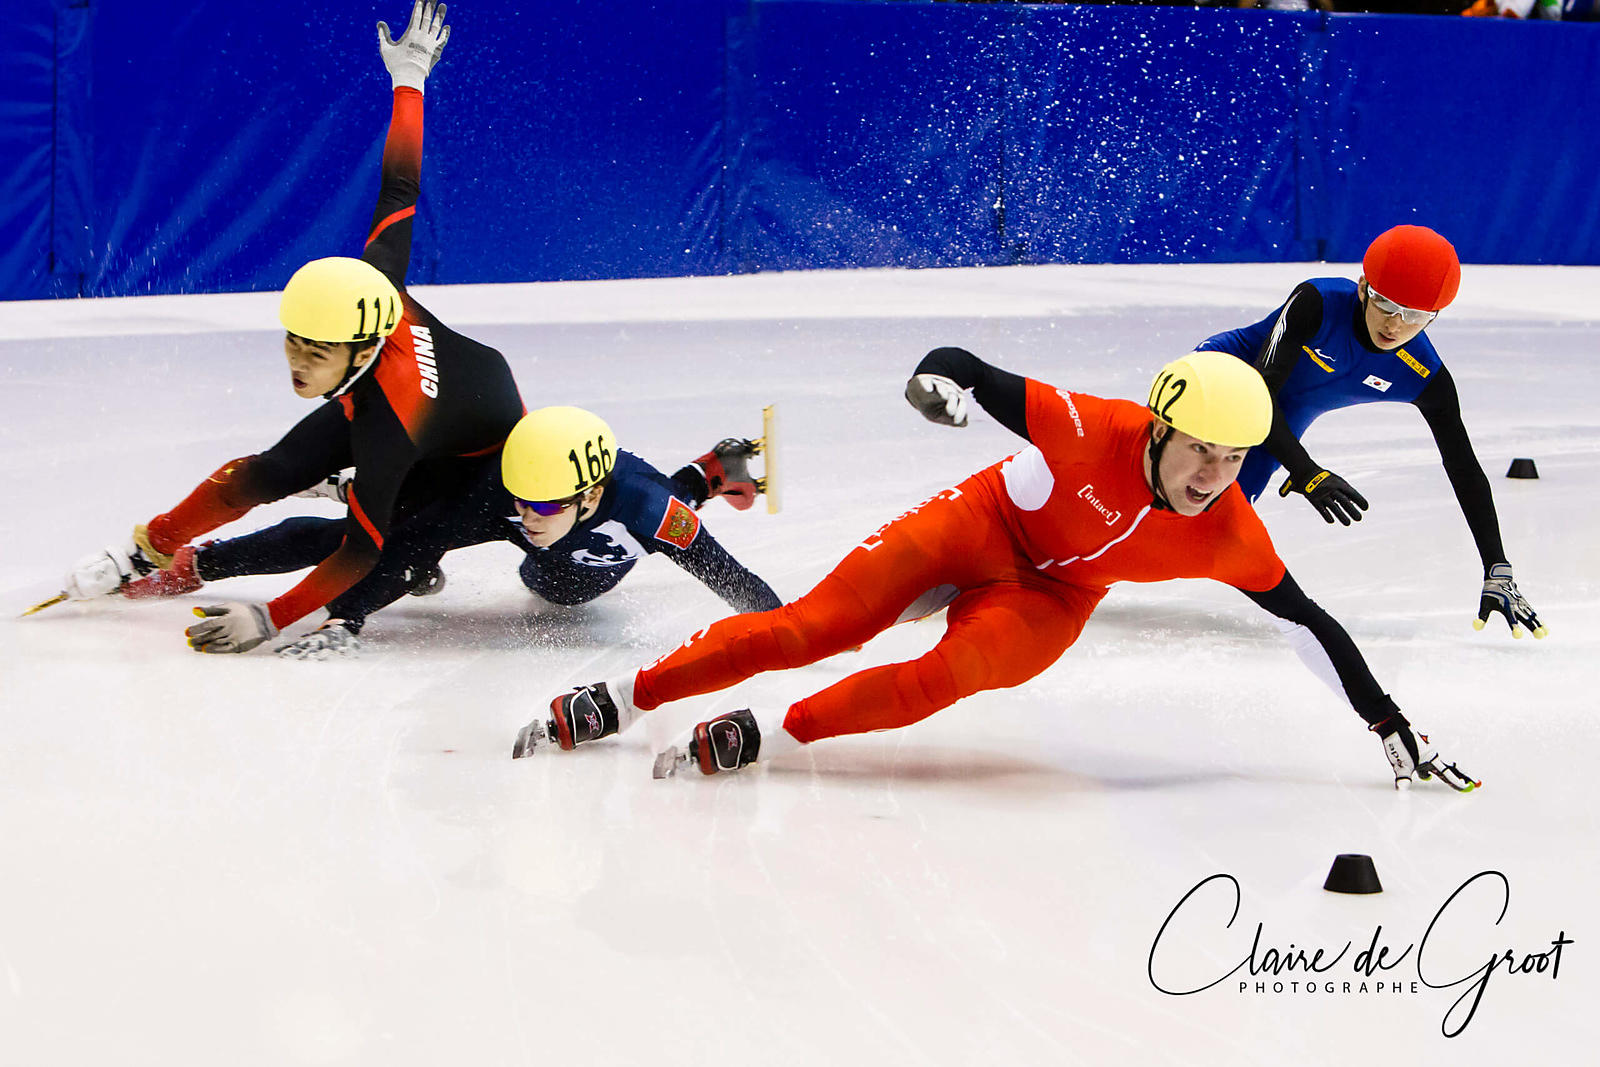 Crash in the 500m mens semi final at the Short Track 2012 ISU Junior World Championships